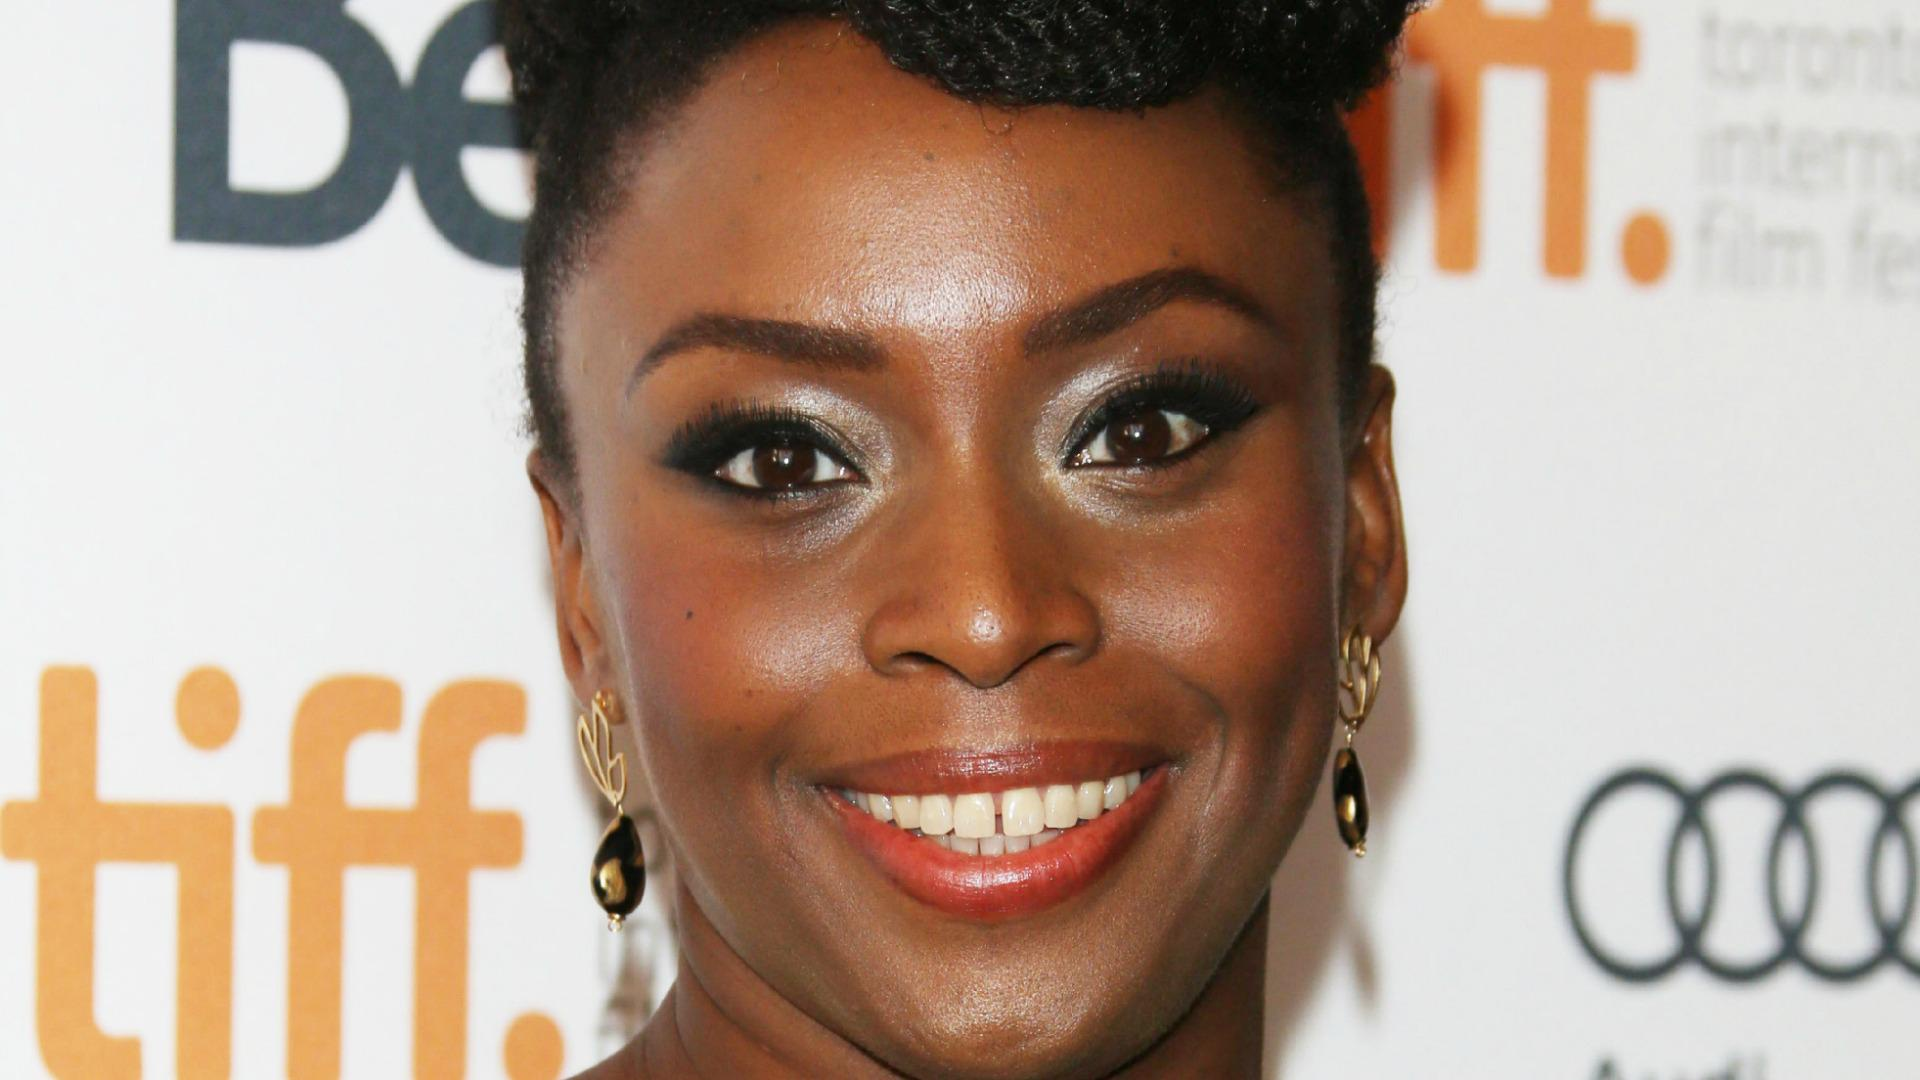 Adichie's <em>We Should All Be Feminists</em> is a call to action: Will you step up?